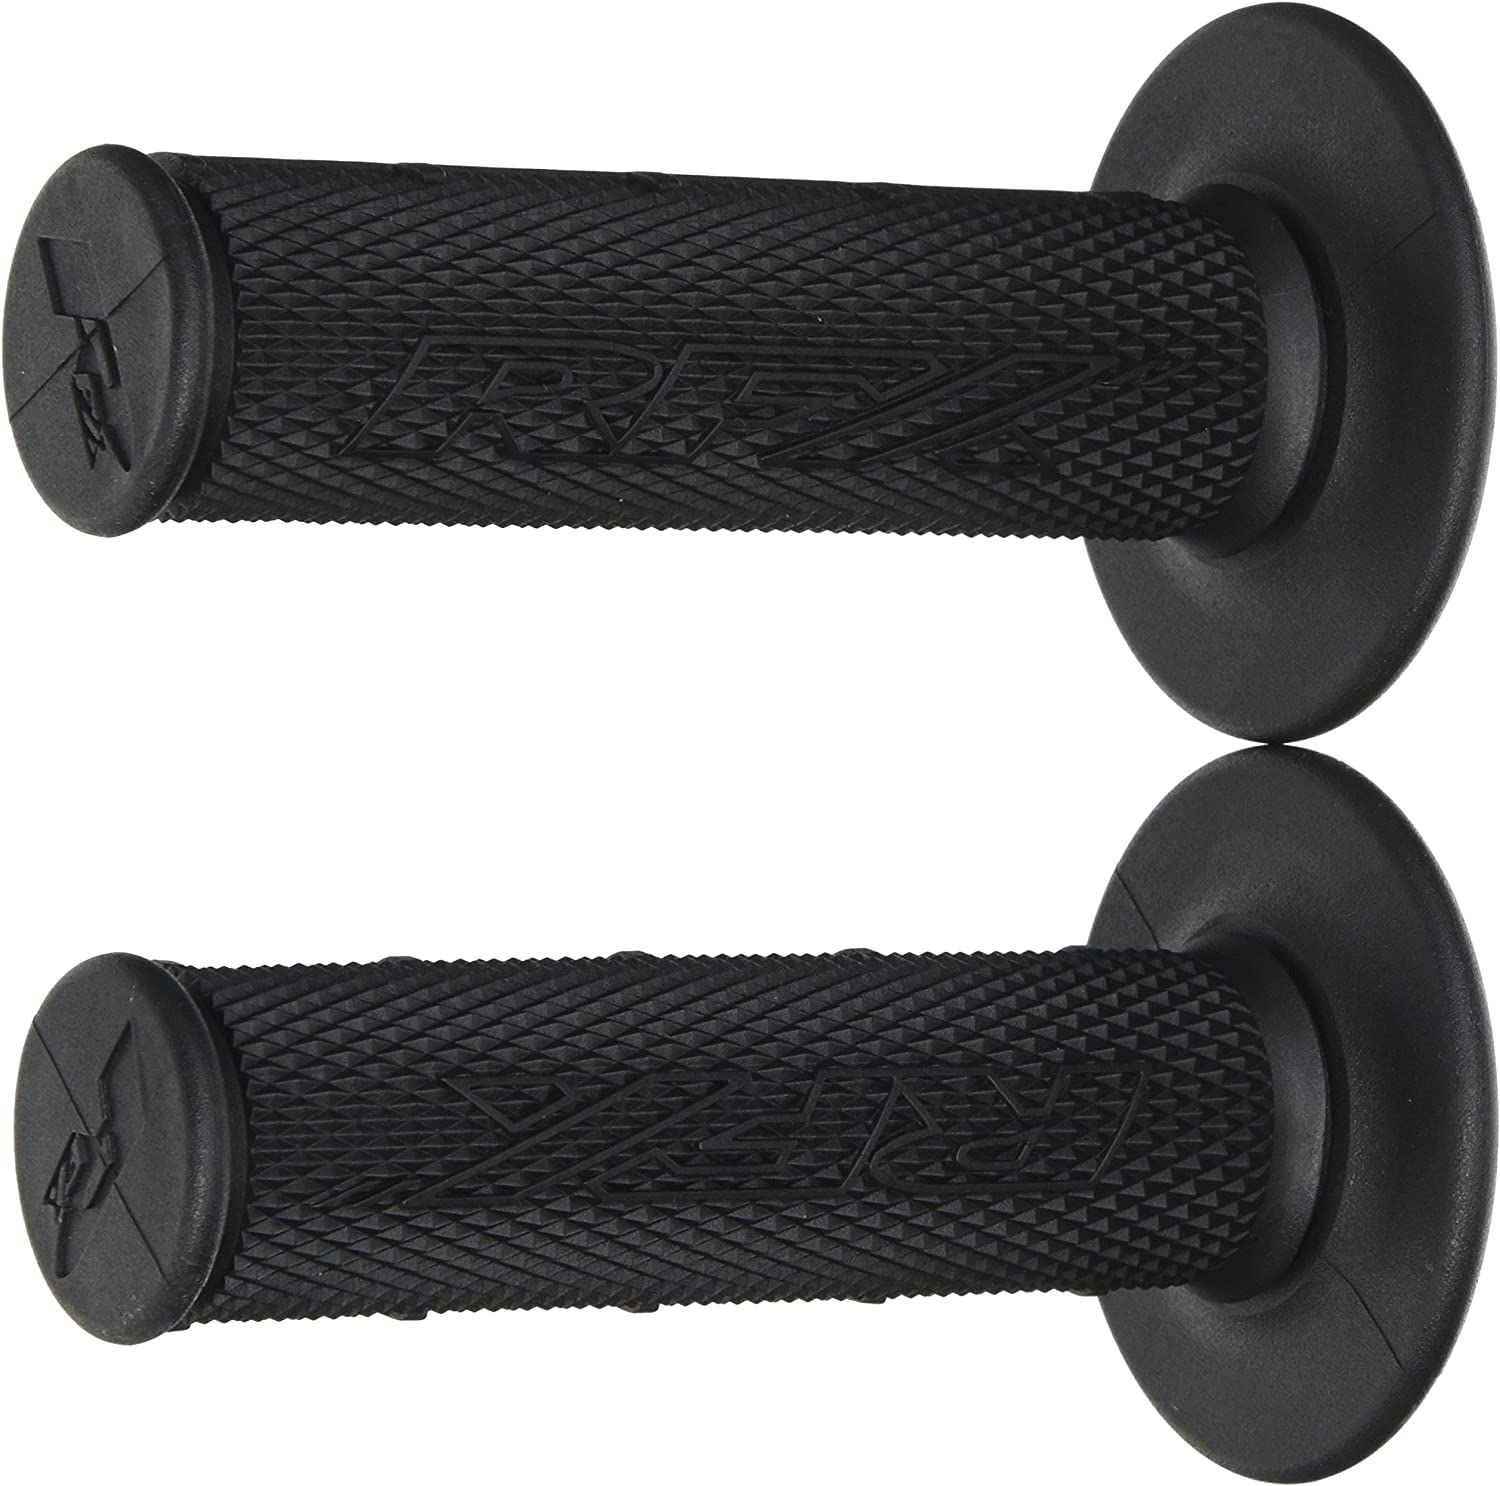 RFX Pro Series Dual Compound Handlebar Grips in Blue and Black